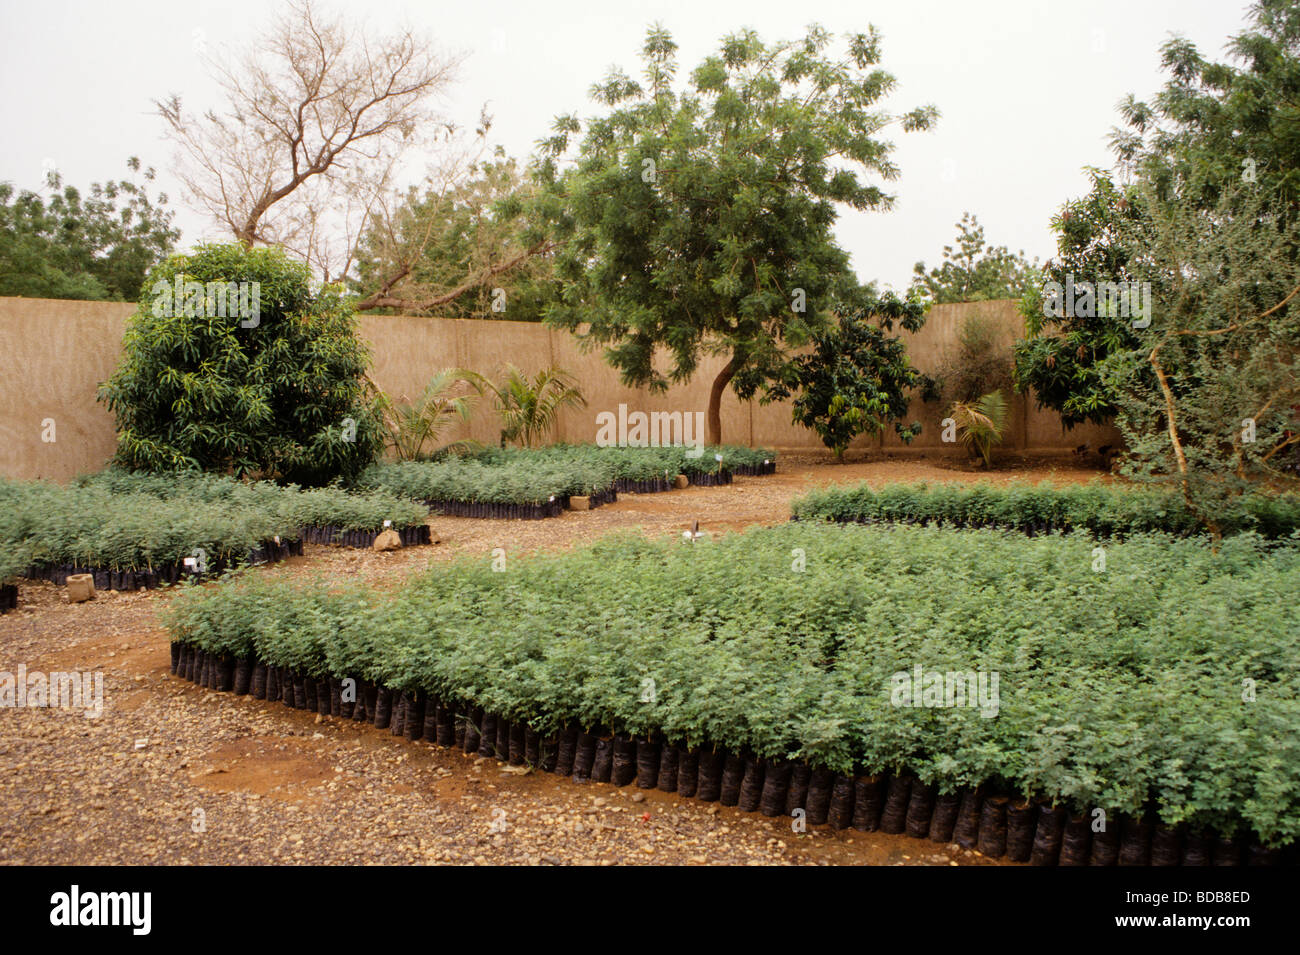 Gum Arabic. Acacia Senegal Tree Nursery, Niger, West Africa Stock ...